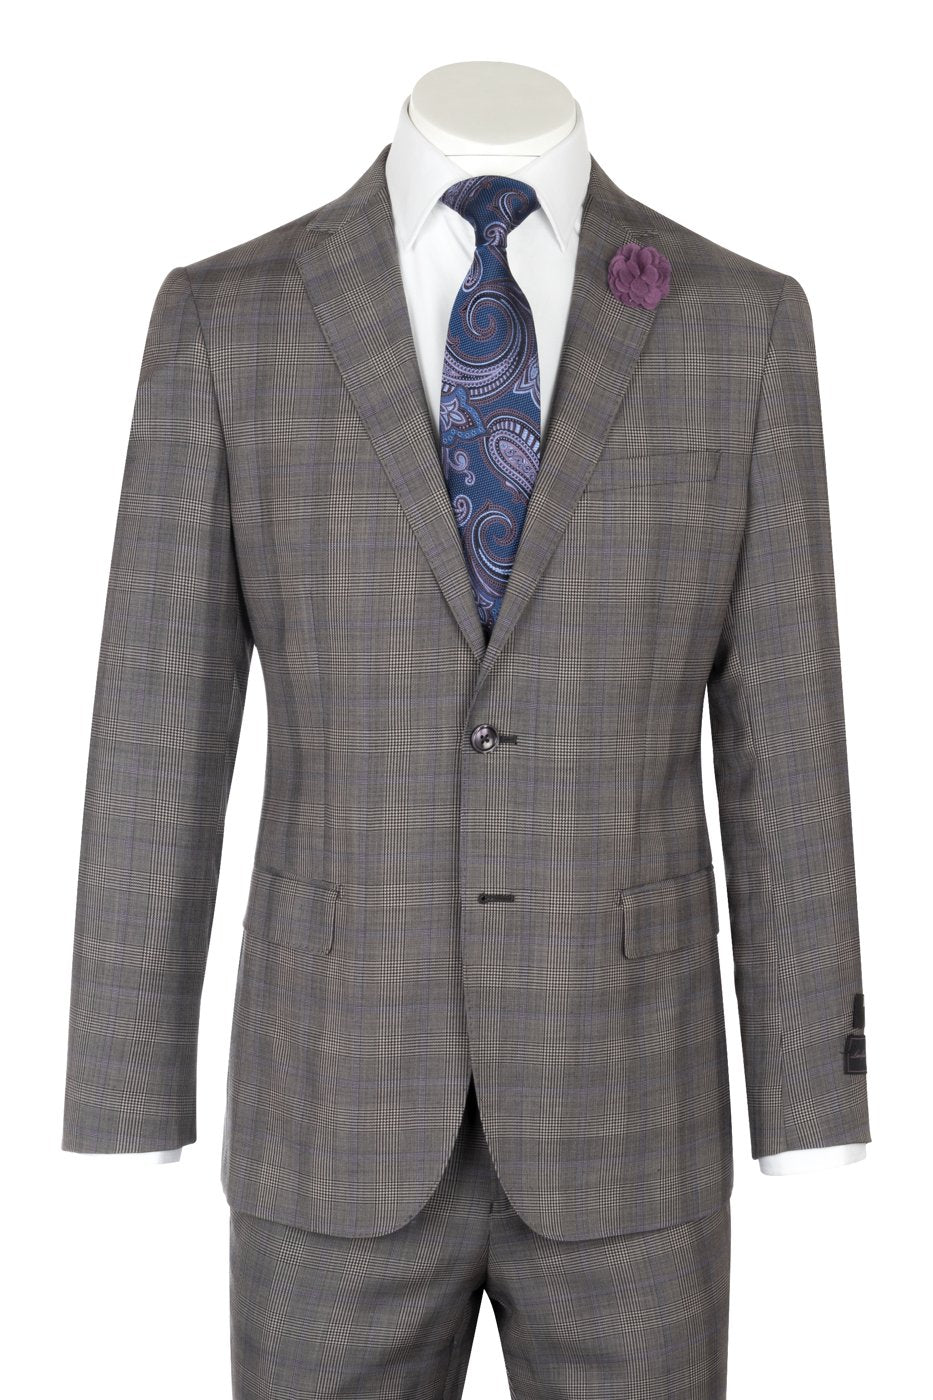 Porto Gray Glen check with purple windowpane design, Slim Fit, Pure Wool Suit by Tiglio Luxe LR61002/3